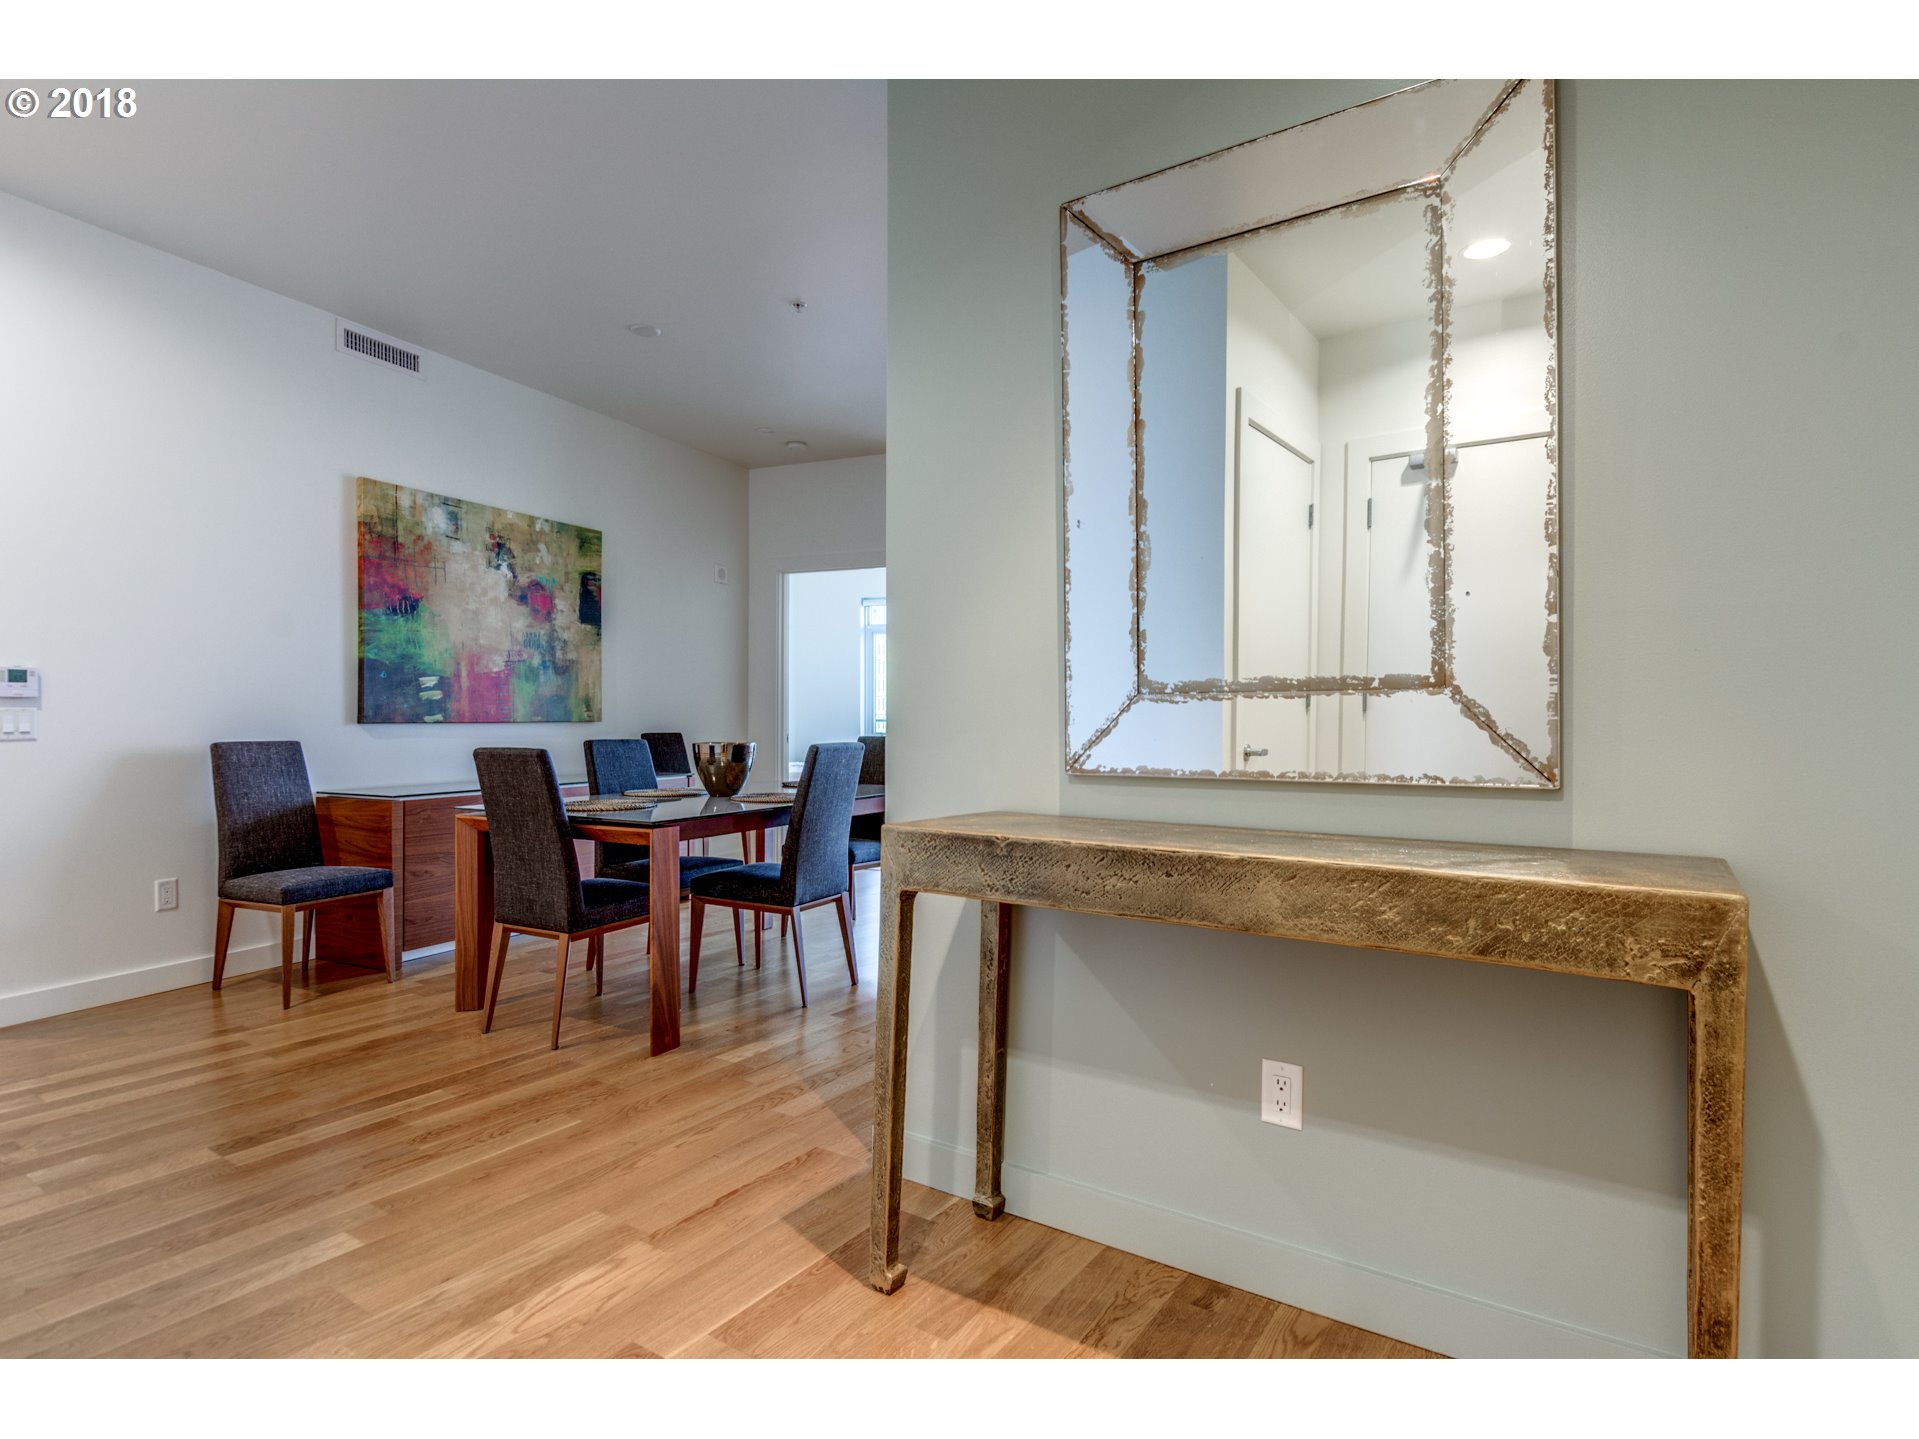 1530 sq. ft 2 bedrooms 2 bathrooms  House For Sale,Portland, OR